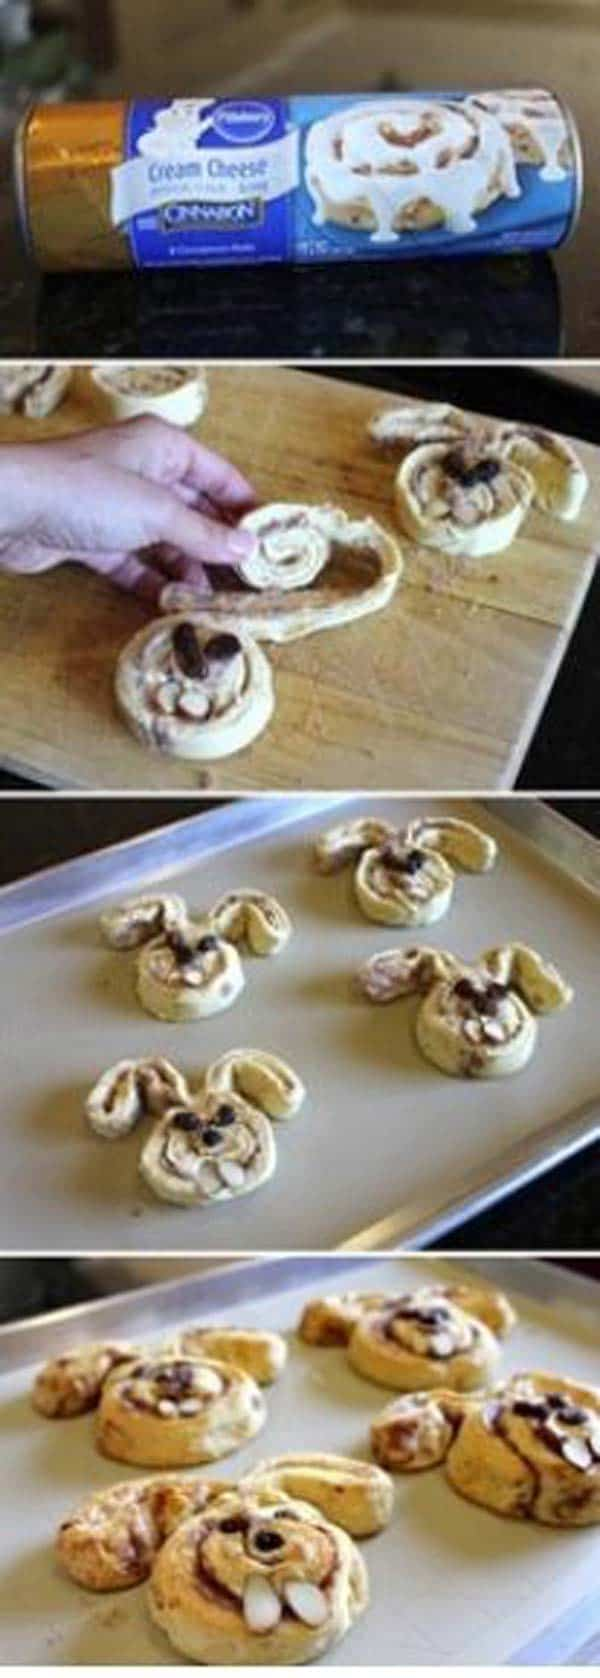 realize bunny shaped cookies